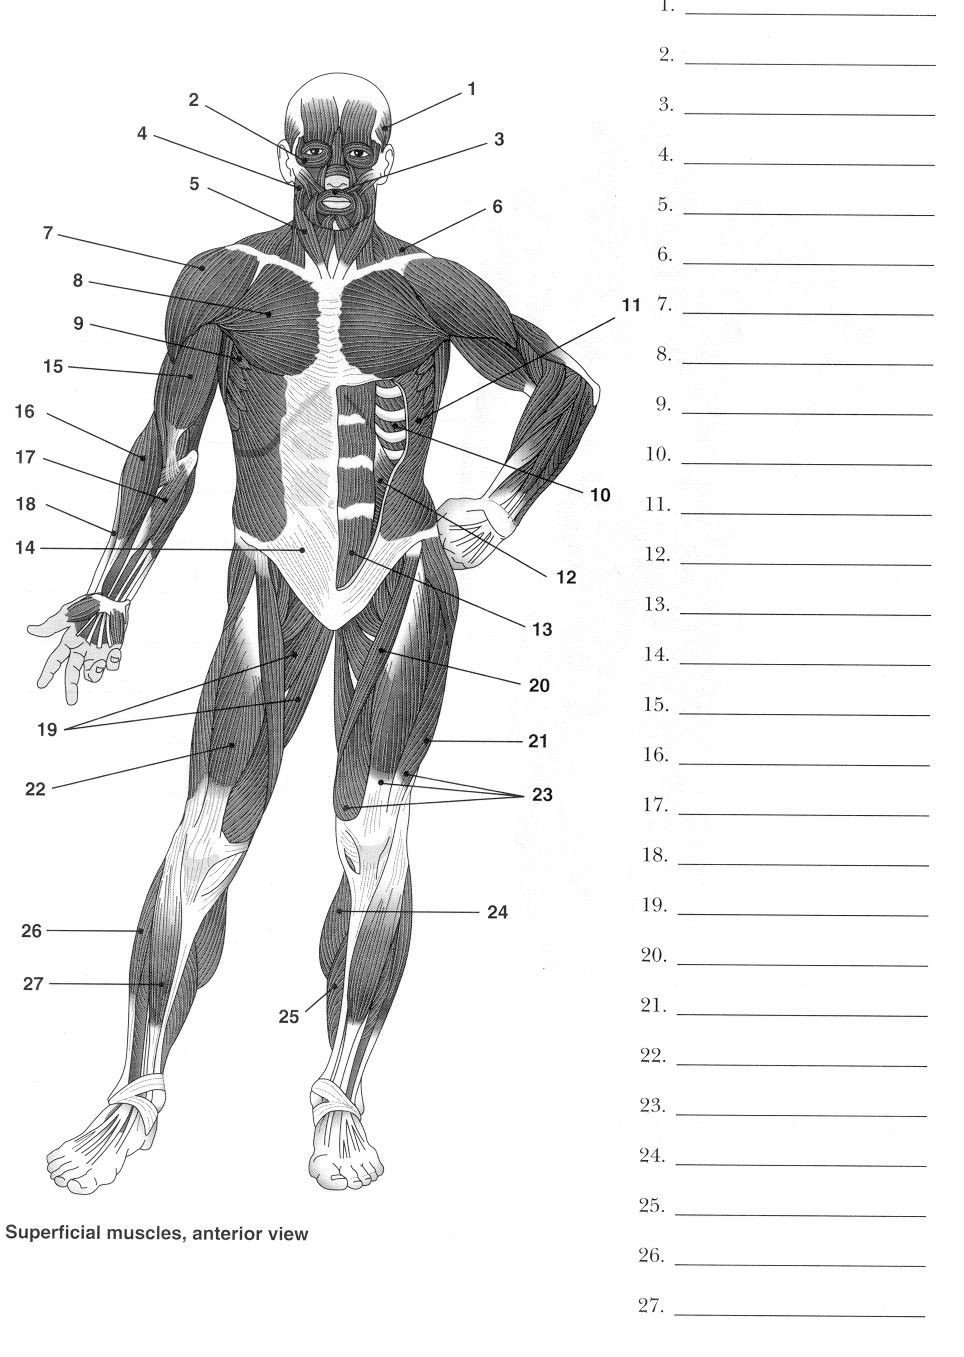 Blank Muscle Diagram Worksheet Label Muscles Worksheet